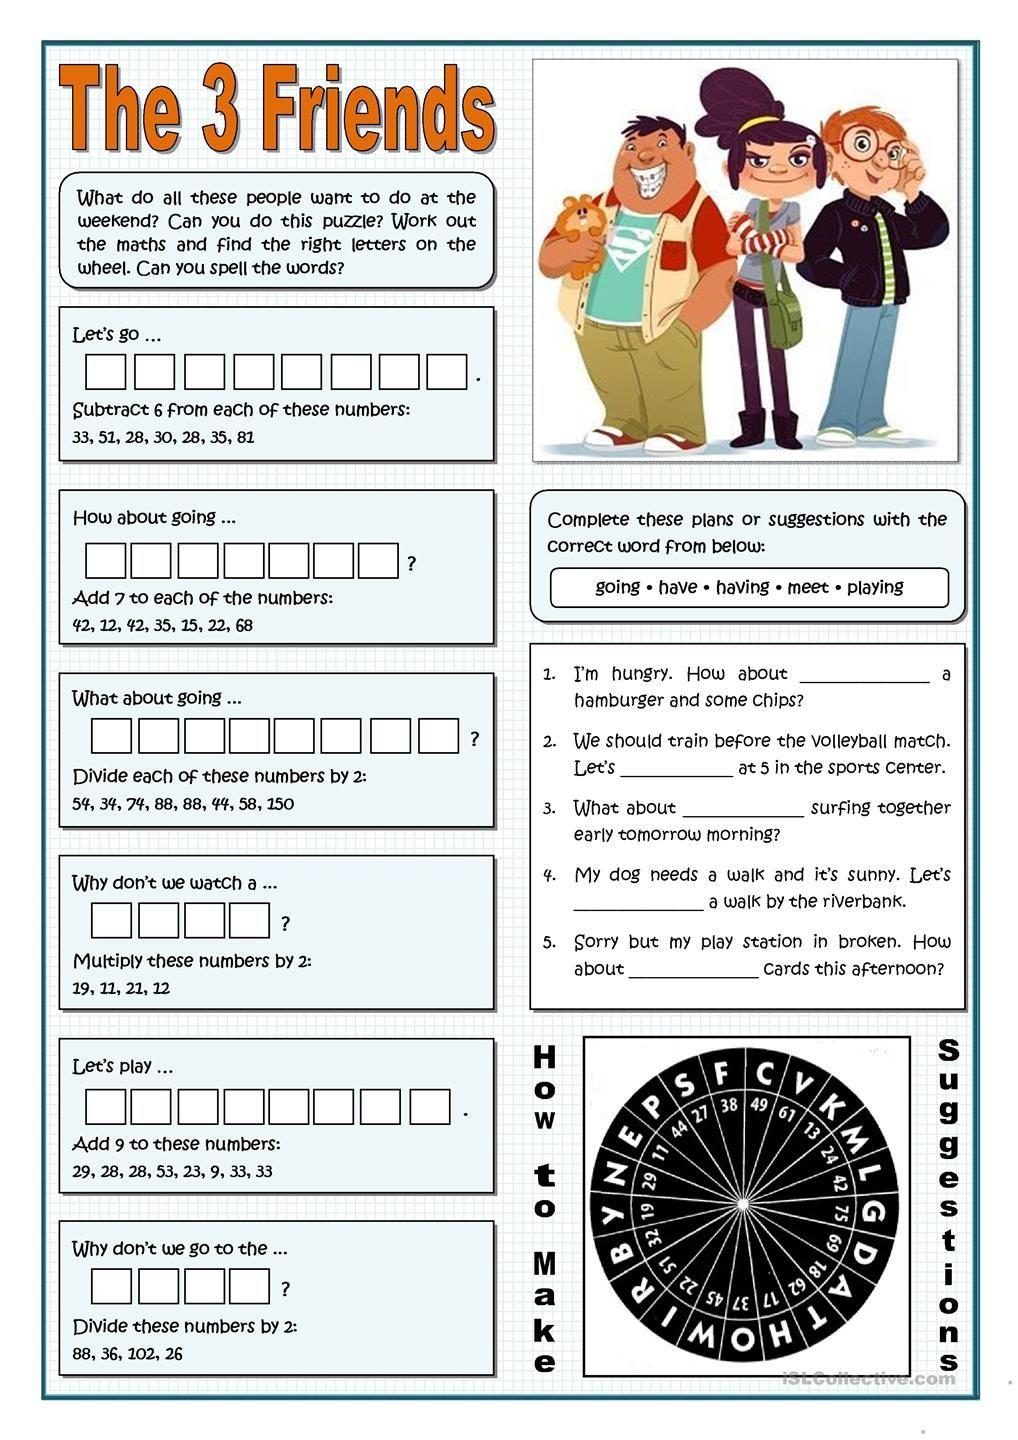 worksheet How Observant Are You Worksheet the three friends making suggestions esl 2 pinterest gerund or infinitive worksheet free printable worksheets made by teachers